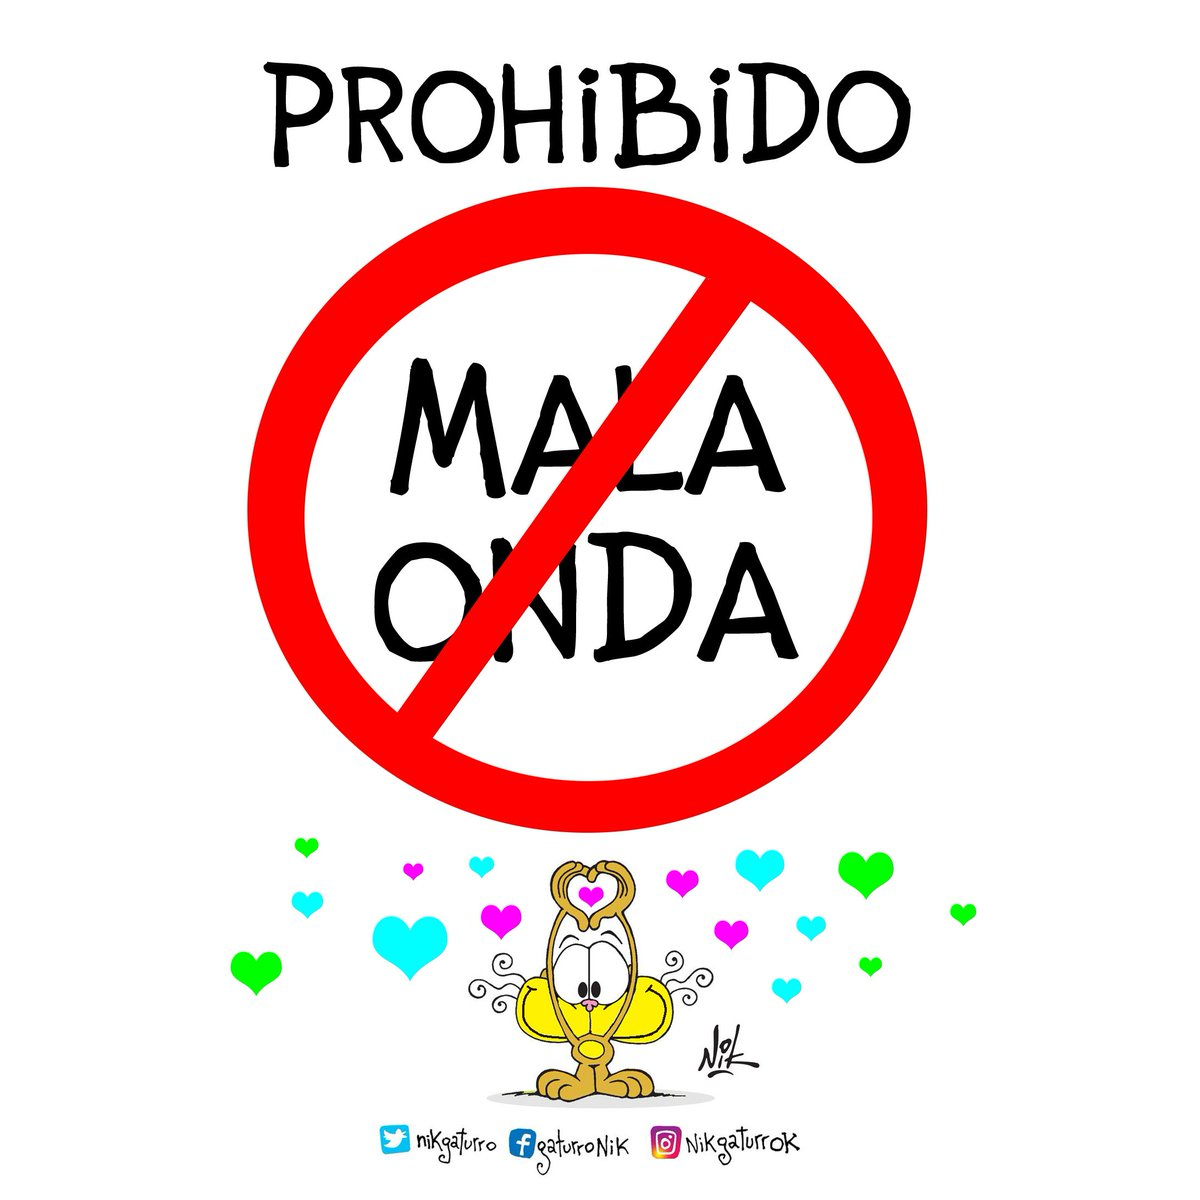 Prohibido https://t.co/qmi4kqTgG7